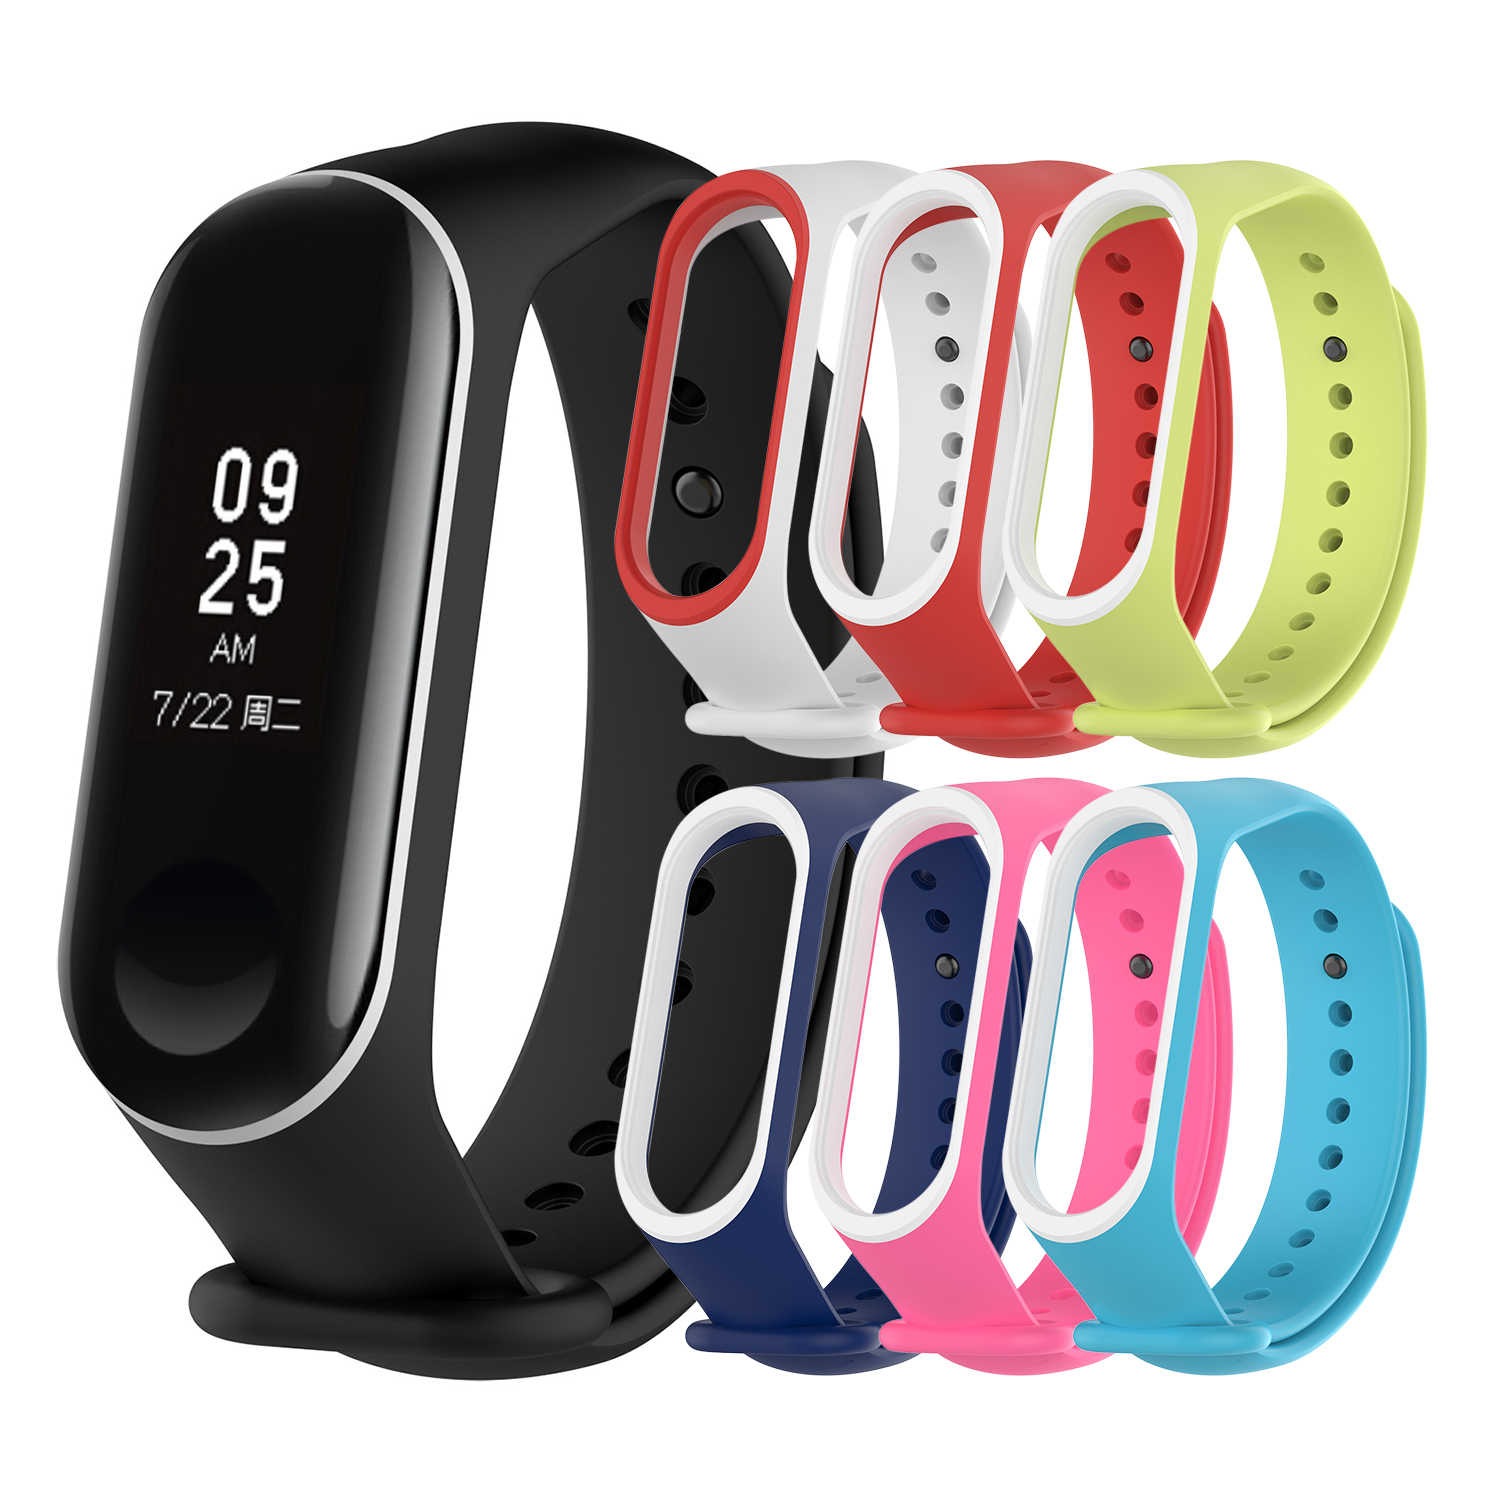 Silicone Wrist Strap Mi Band 4 Correa Band Smart Watch Accessories for Xiaomi mi Band 3 4 Bracelet Wristband Miband 3 4Strap